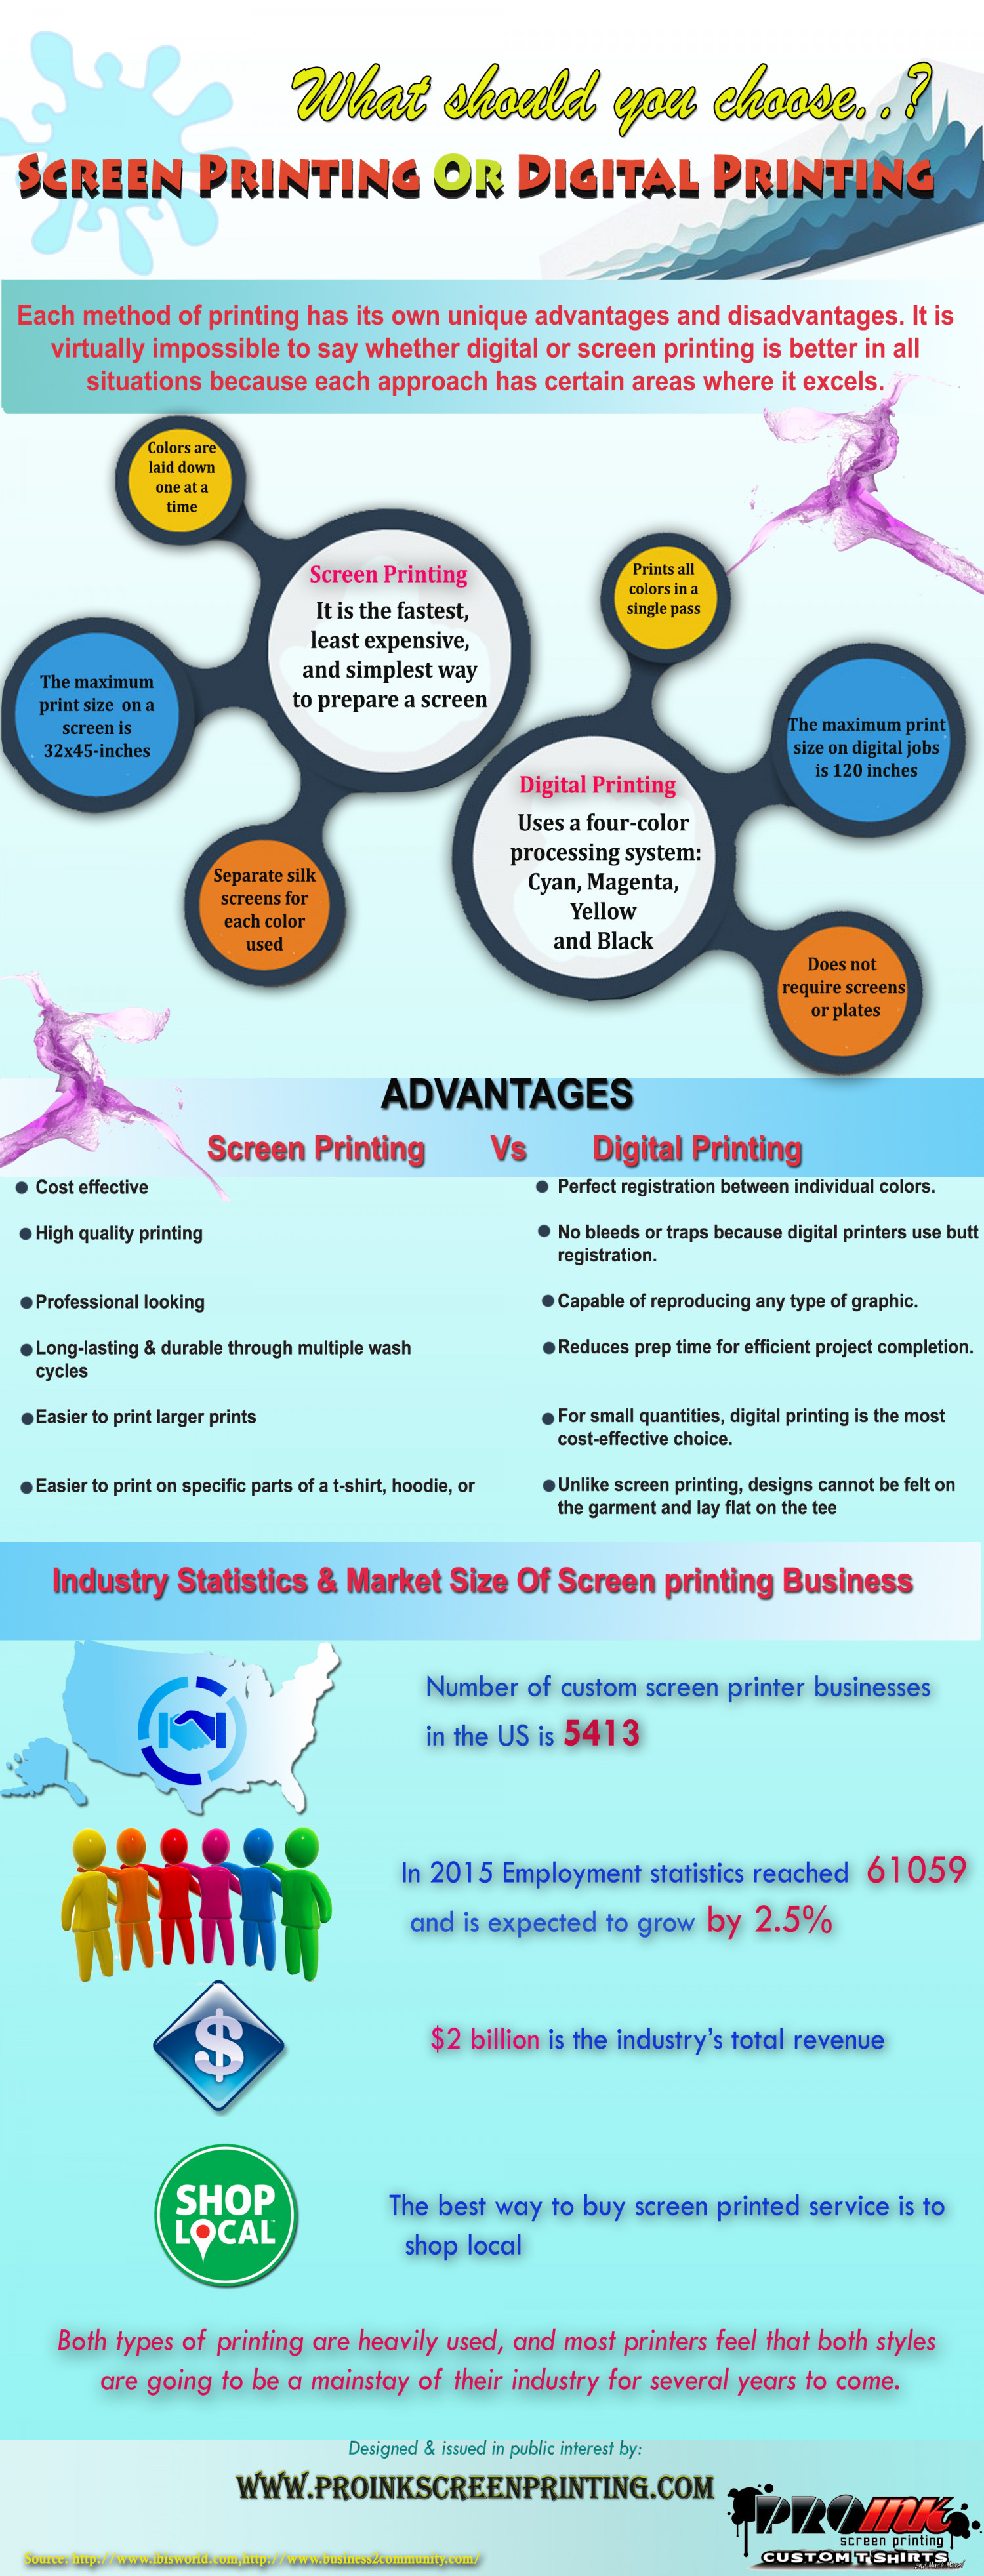 what is screen printing essay Screen printing with its ability to lay down a heavier ink deposit is a process where an industrial woven fabric or screen is manually stretched to a predetermined tension, and affixed to a wood or aluminum frame using a suitable adhesive or mechanical means.